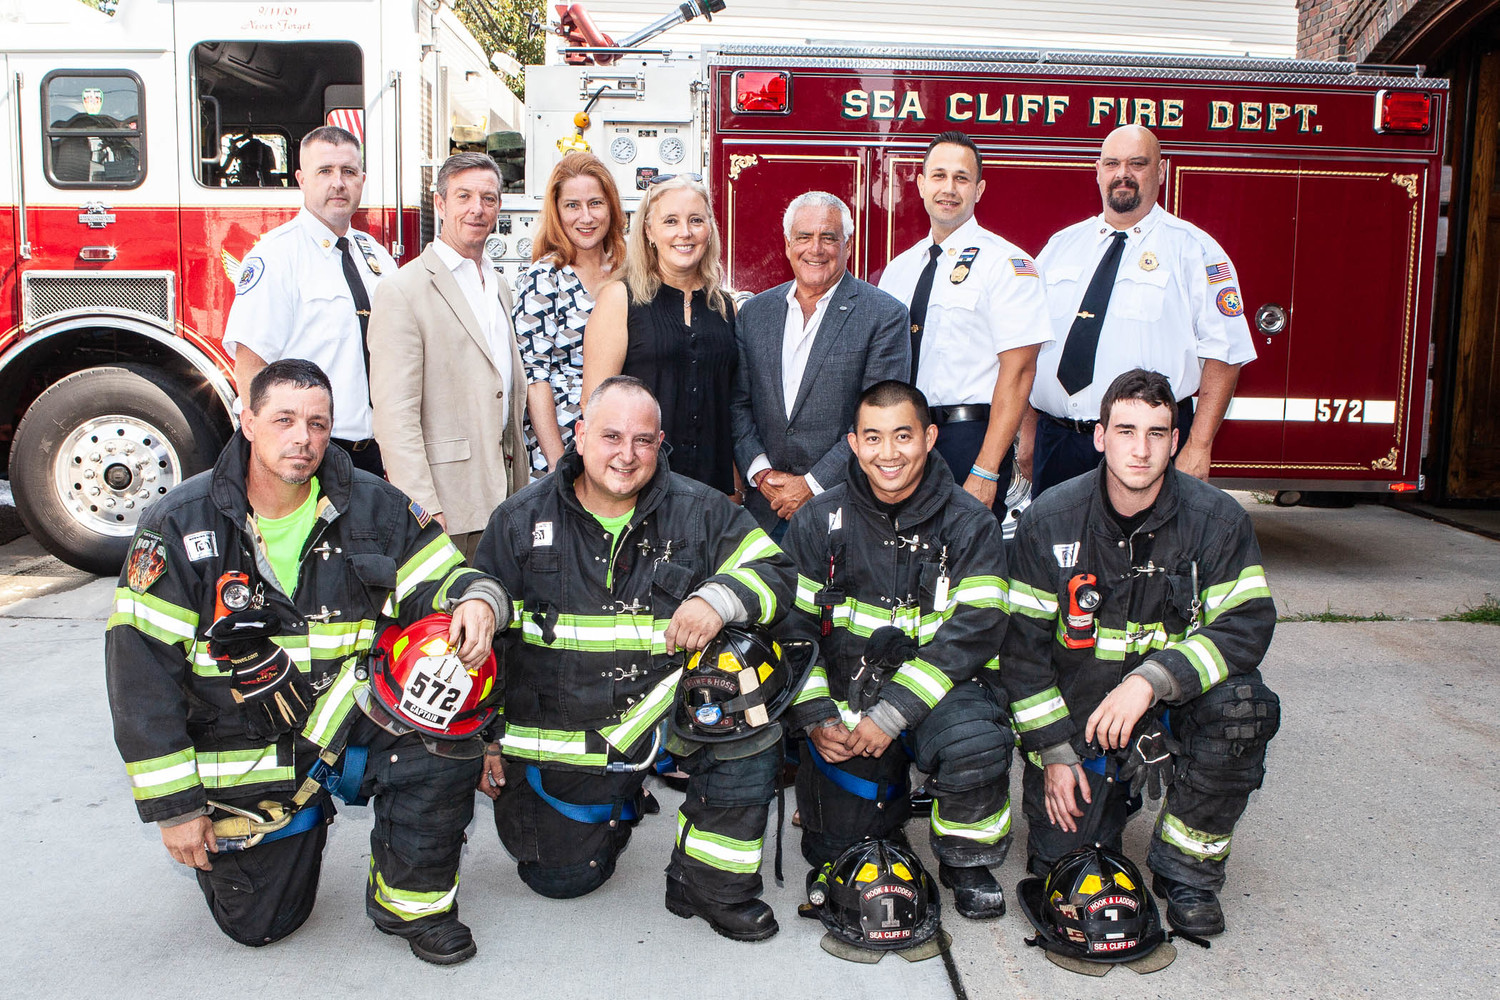 Legislator Delia DeRiggi-Whitton, center, with village officials and some of Sea Cliff's finest.